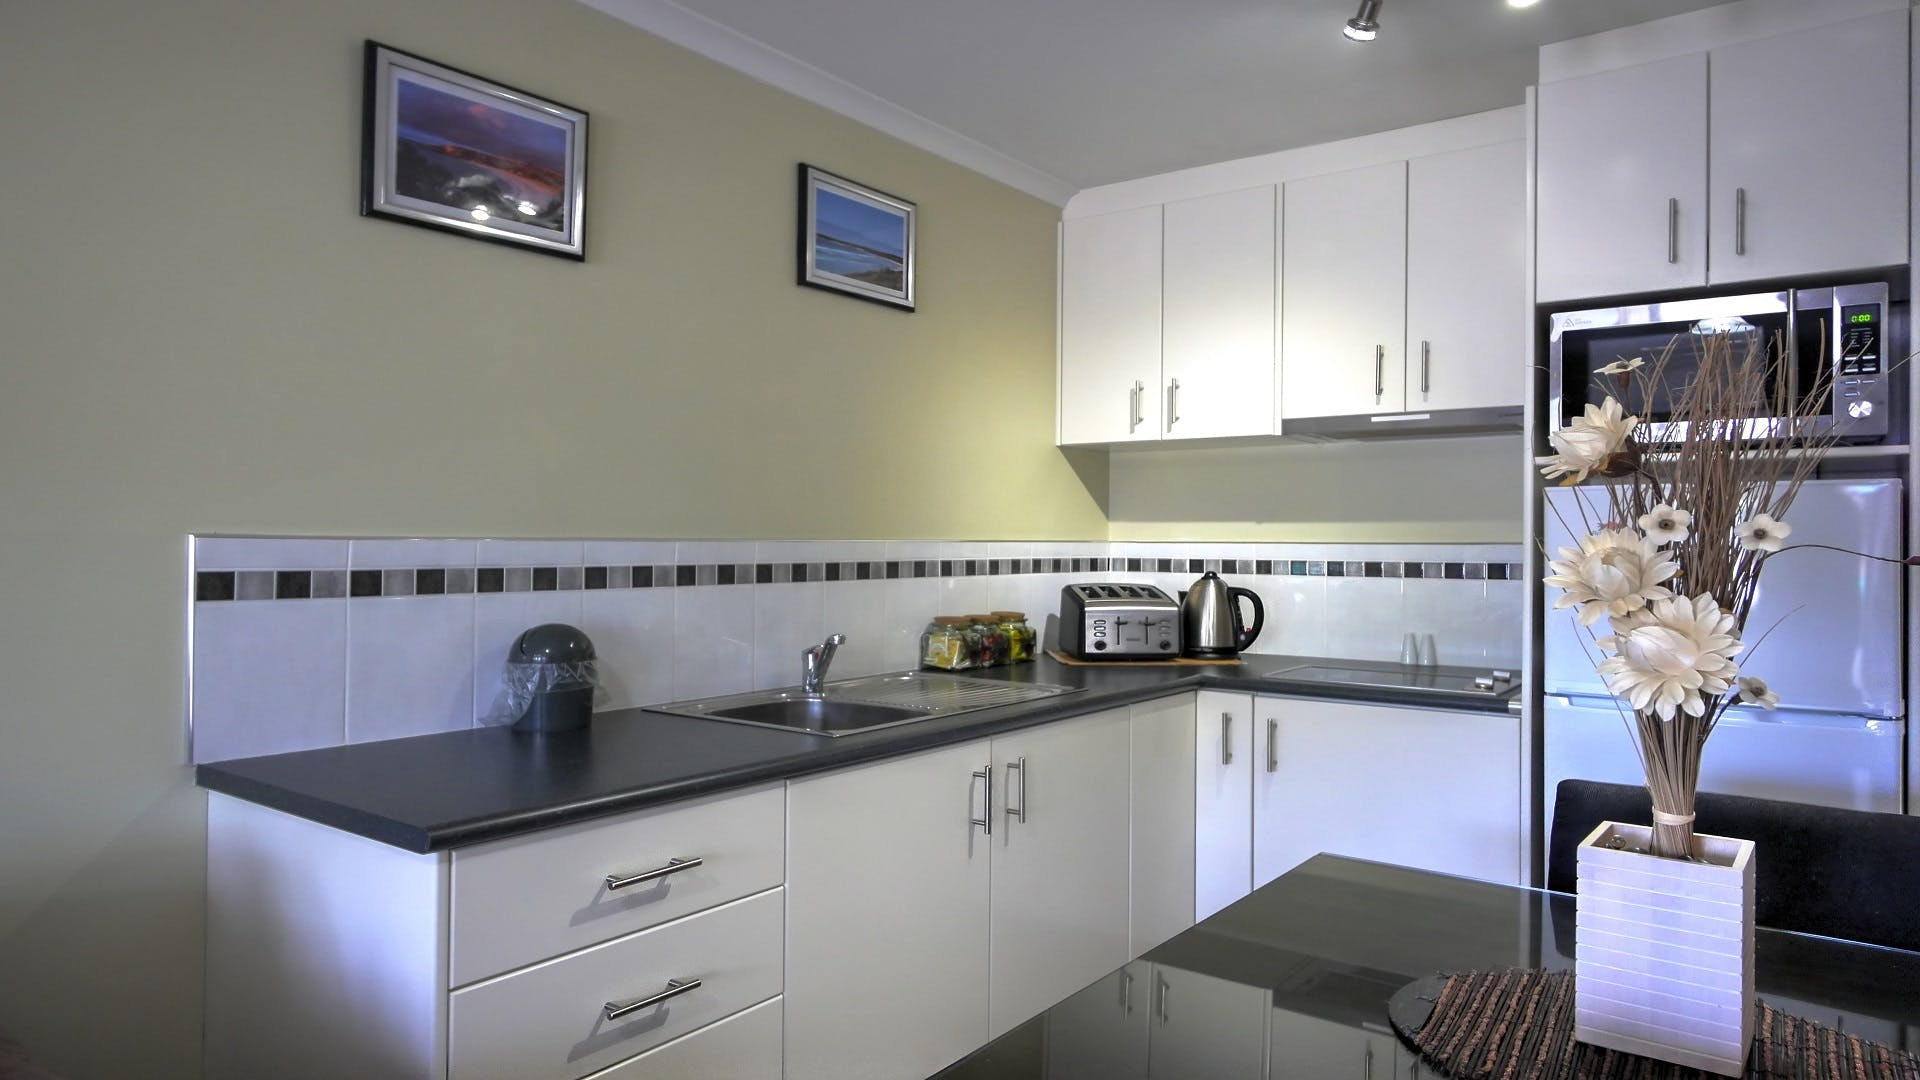 #Modern kitchen facilities at Ficifolia Lodge